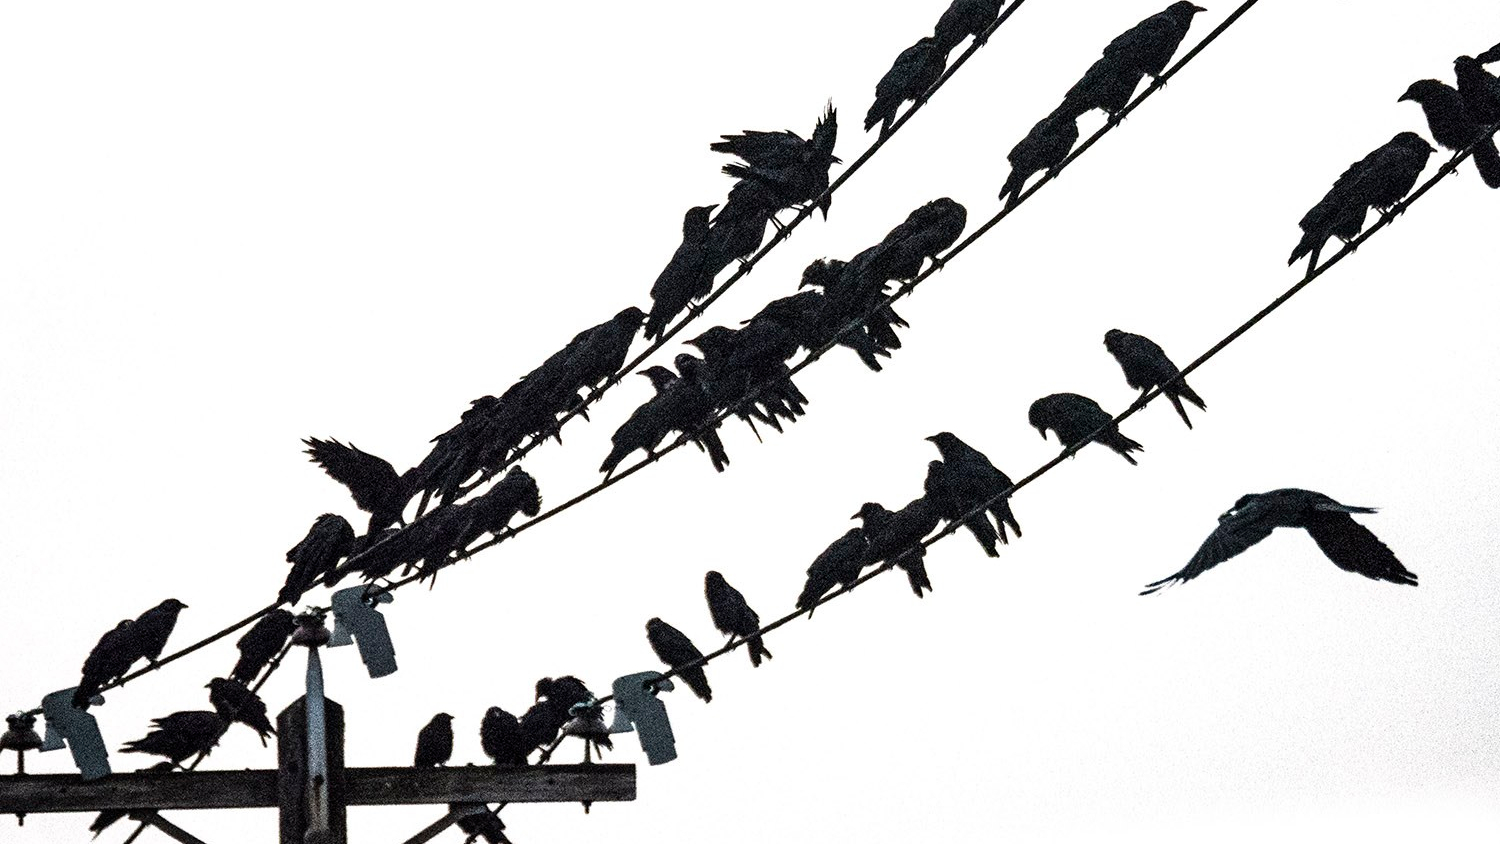 crow crowd on wires